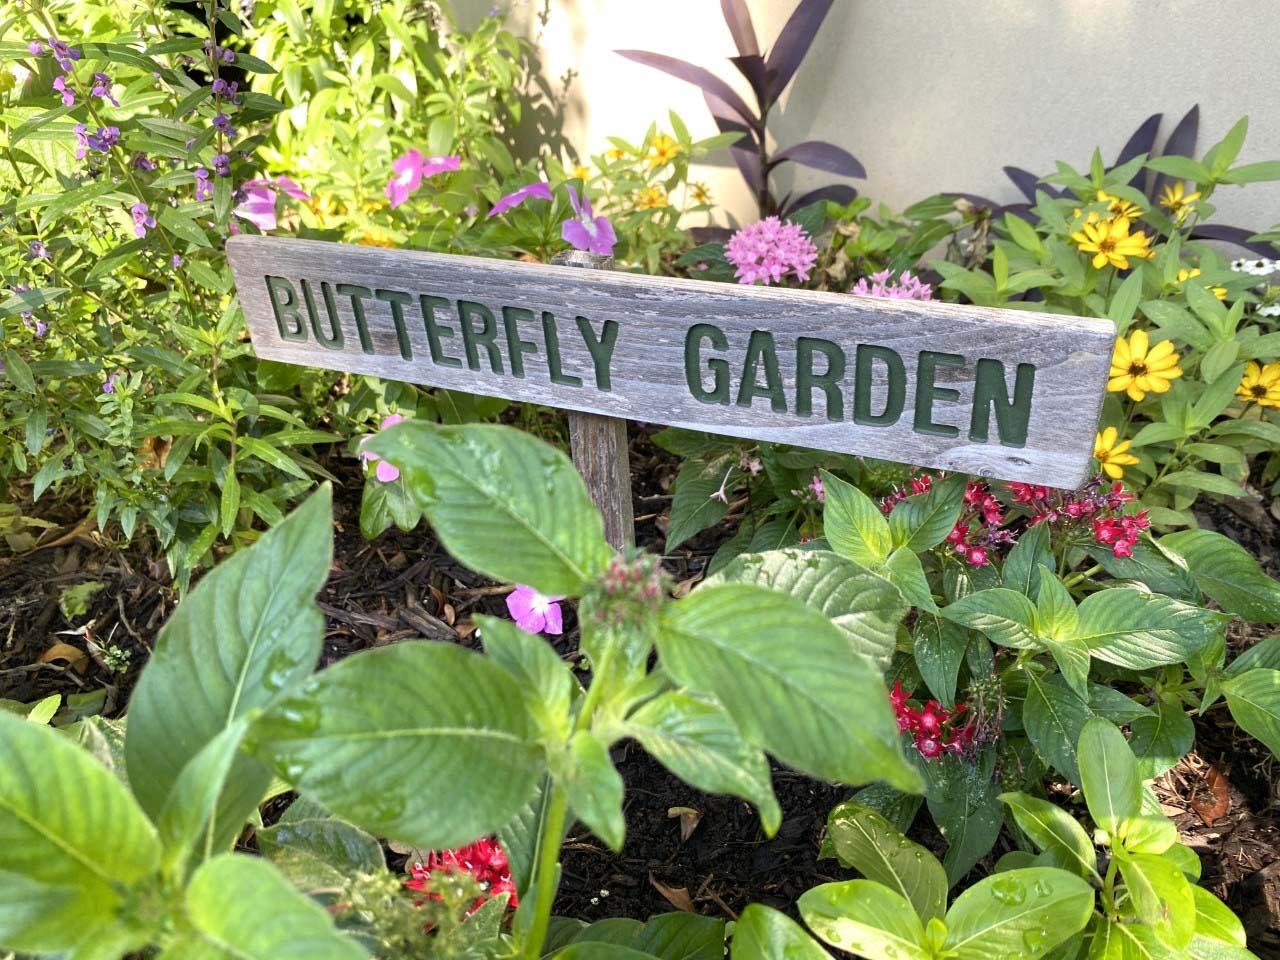 plants and Butterfly Garden sign